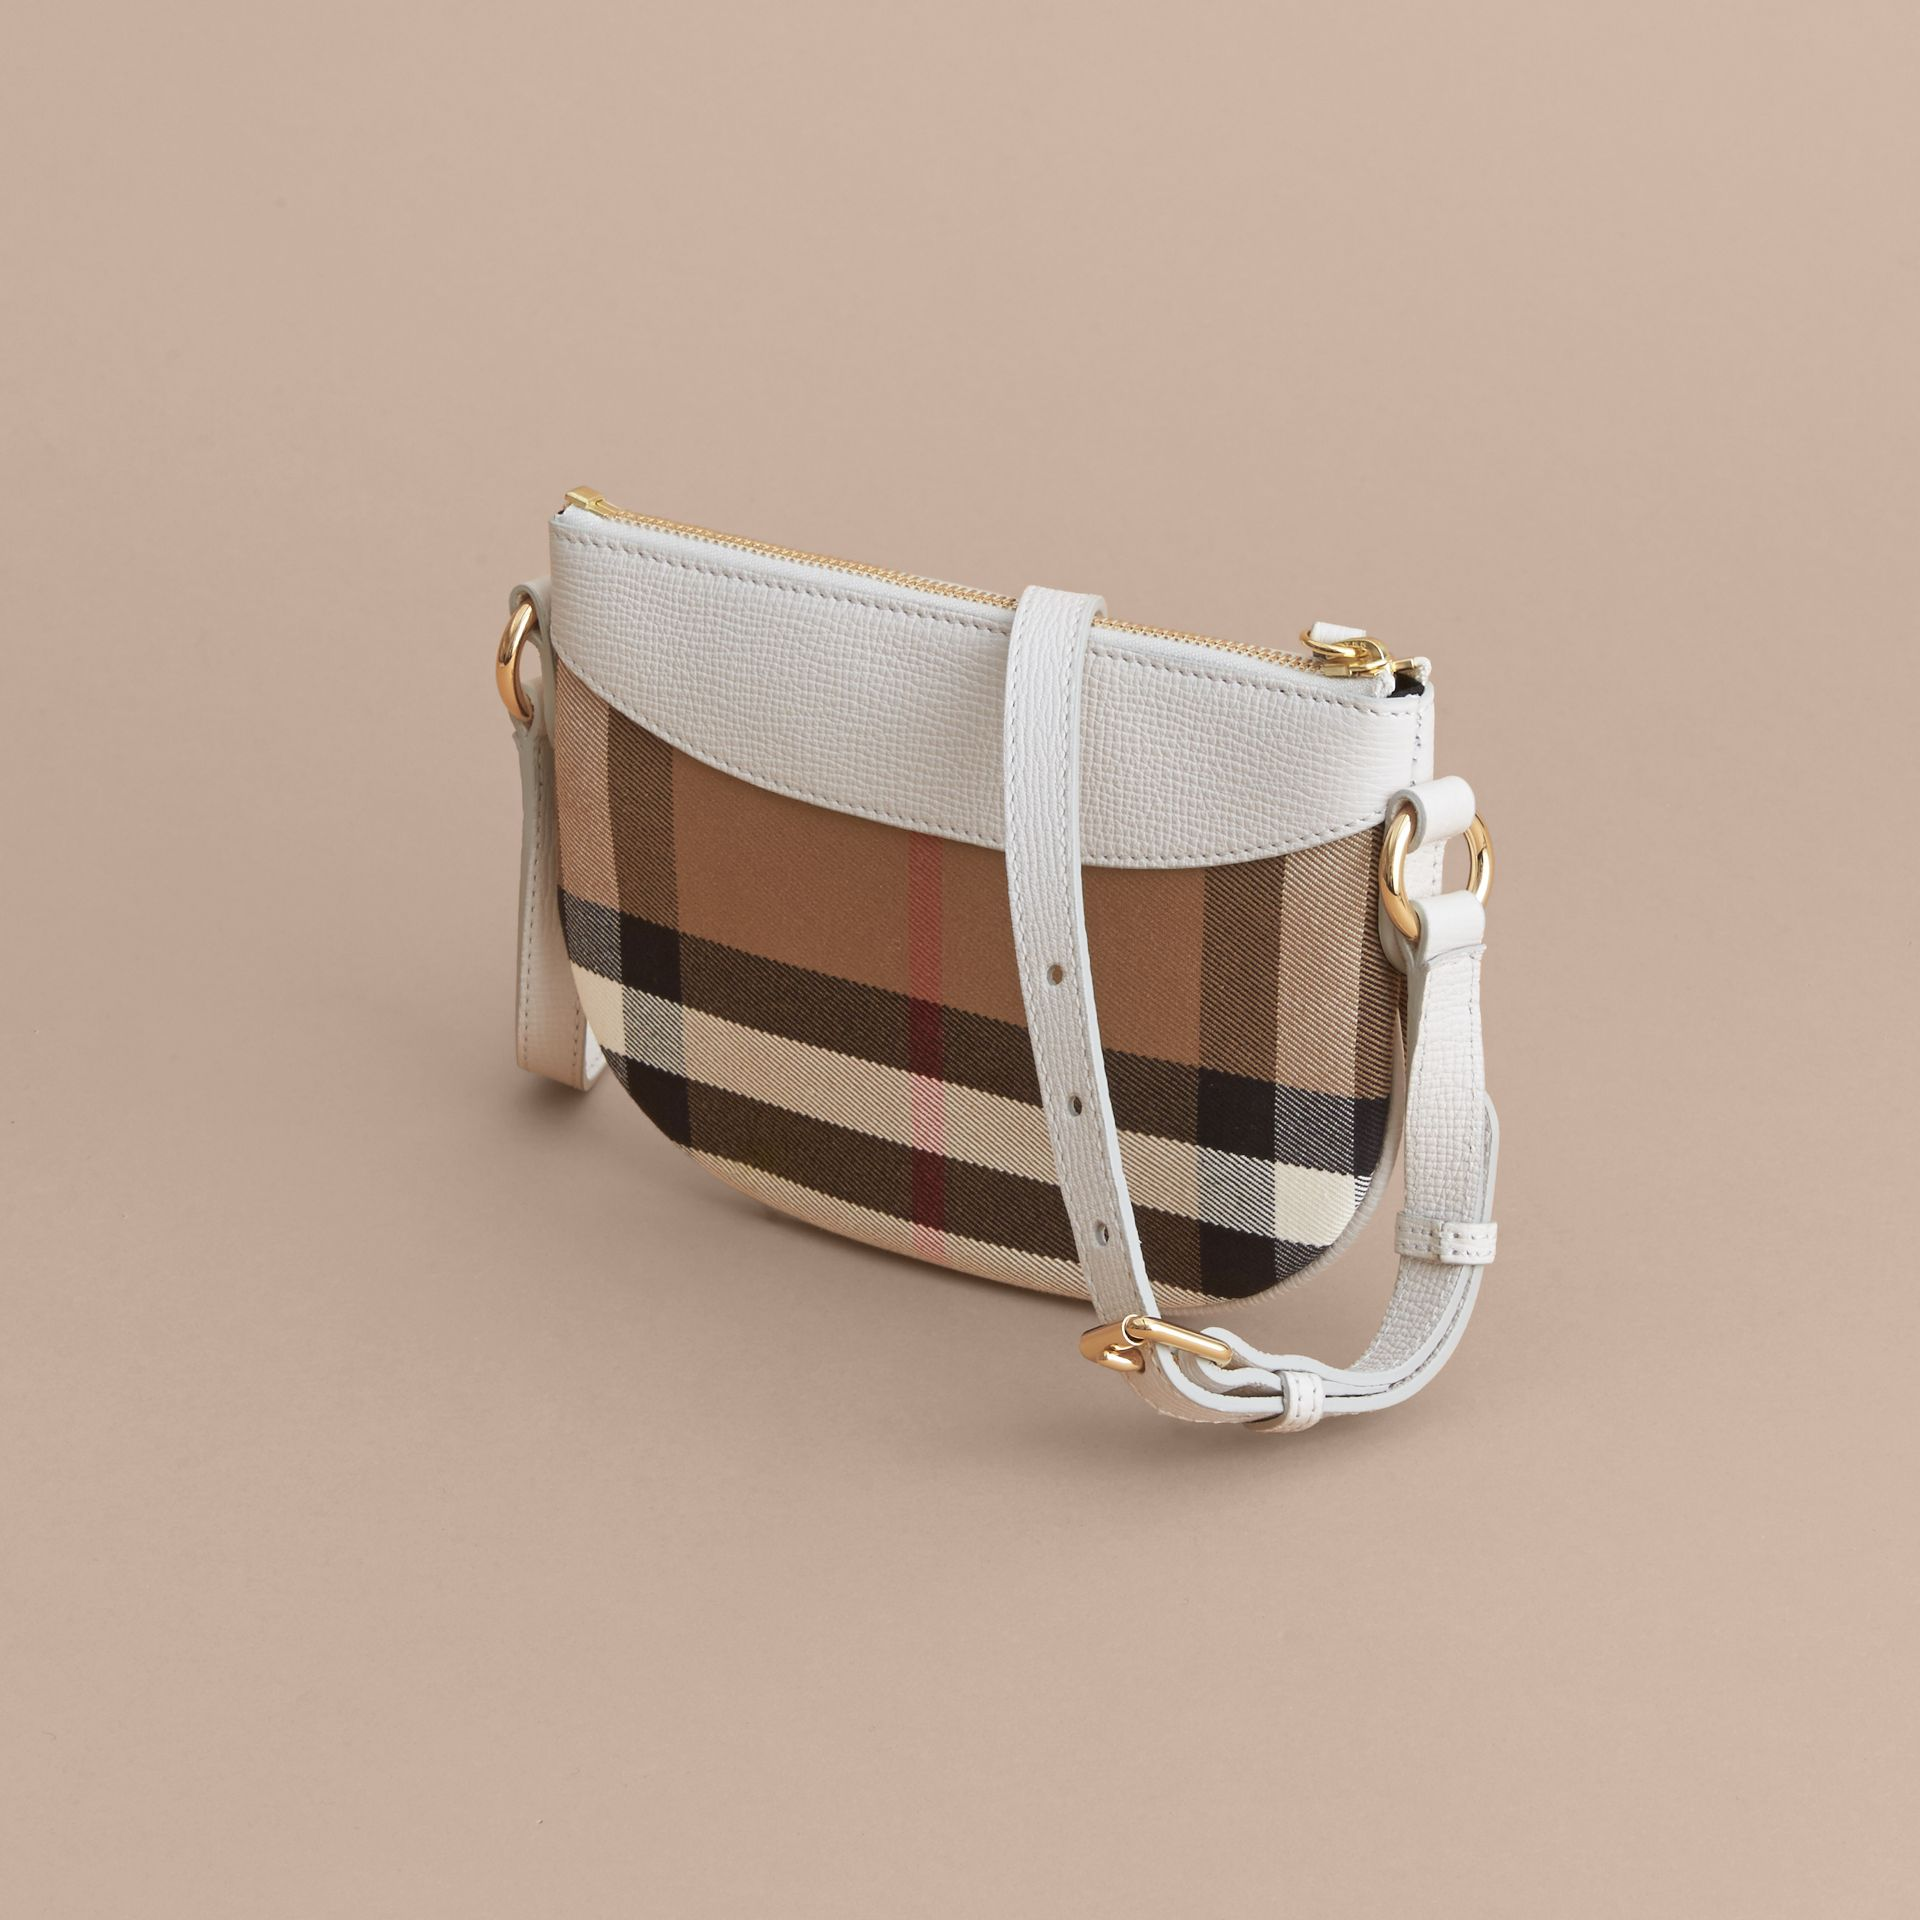 House Check and Leather Crossbody Bag in Natural - Girl | Burberry - gallery image 3